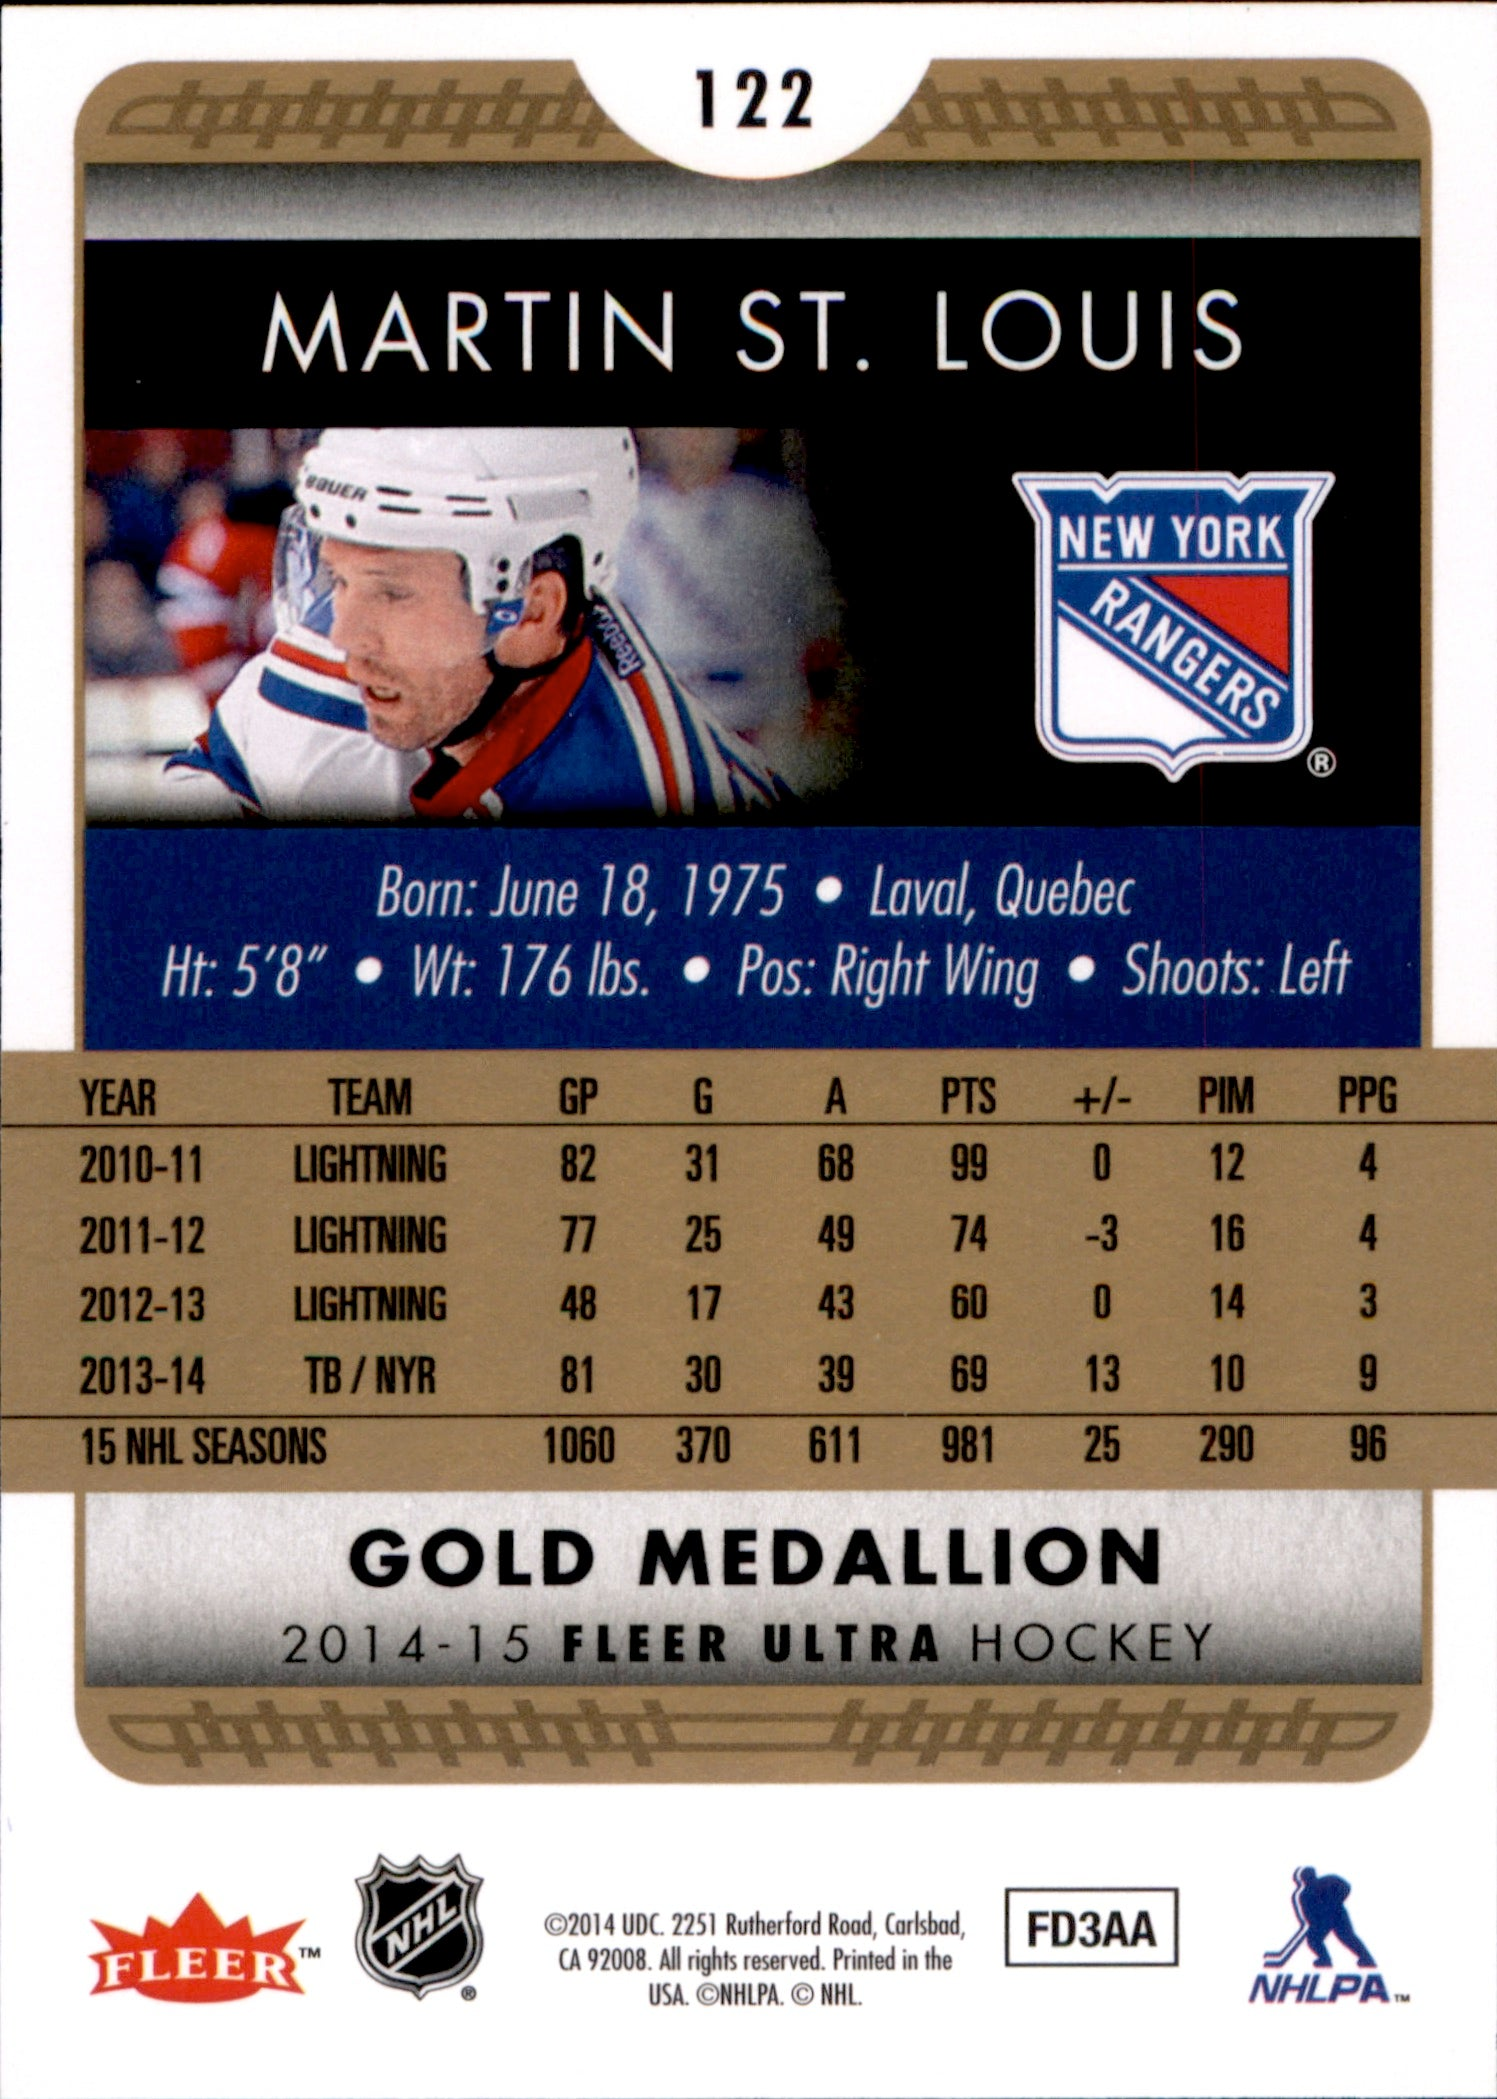 2014-15 Fleer Ultra Gold Medallion #122 Martin St. Louis | Eastridge Sports Cards